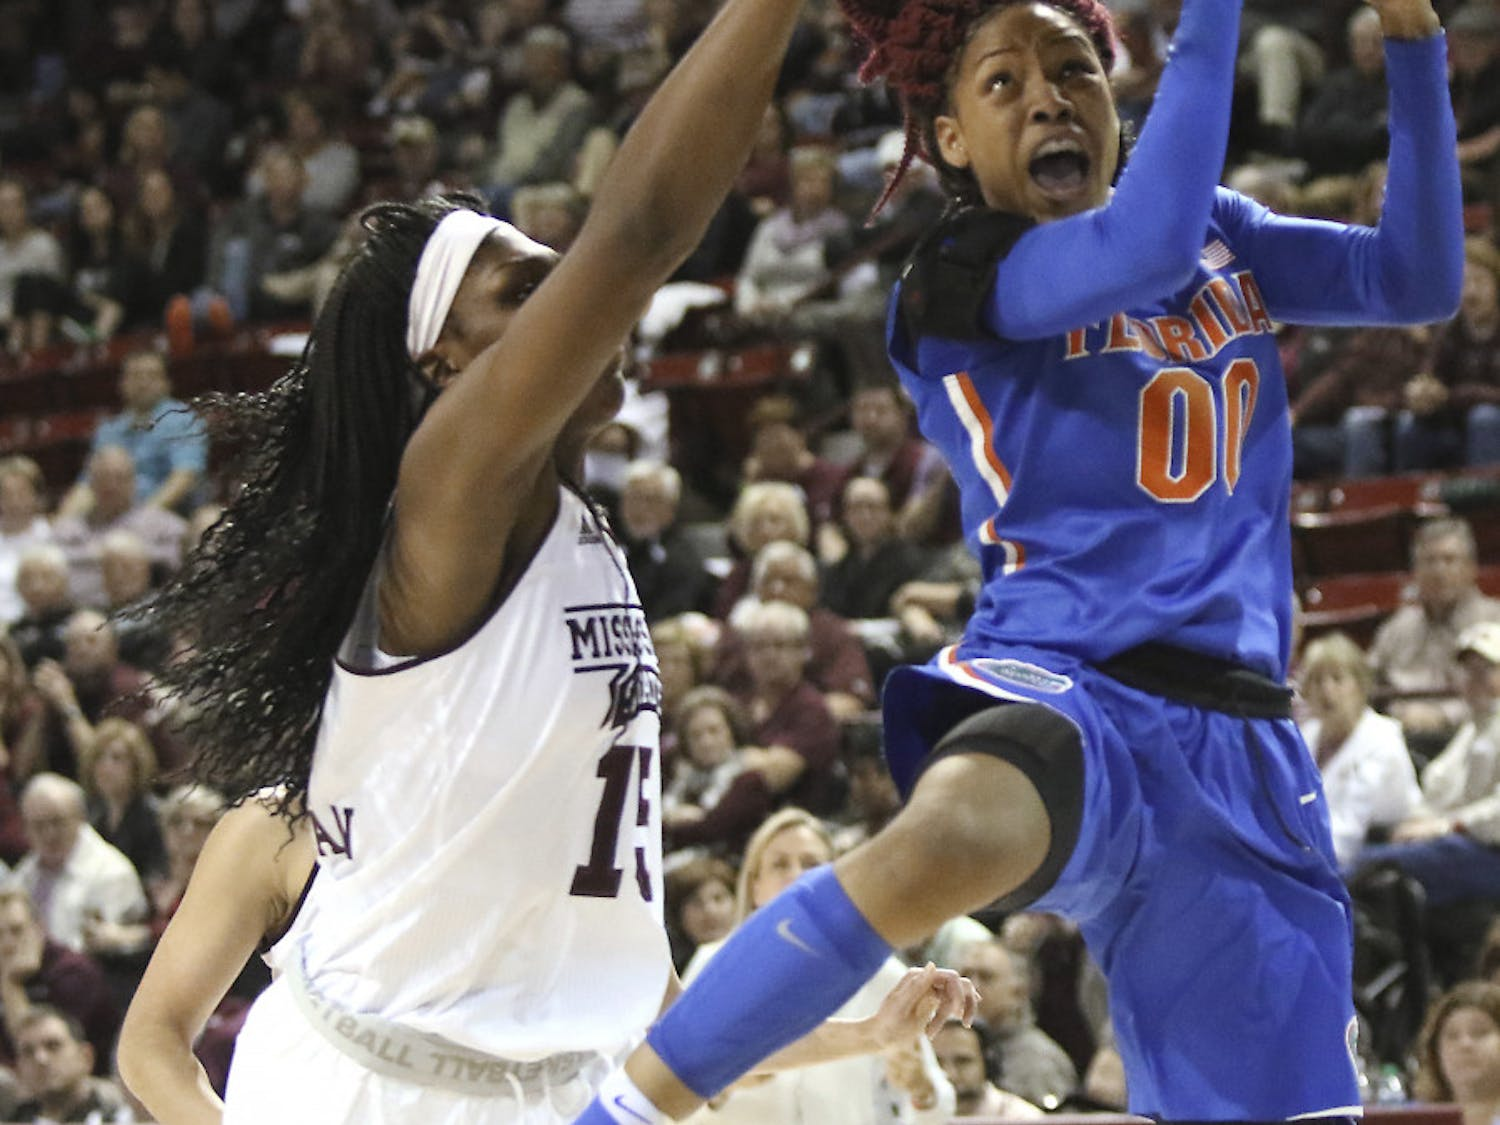 Florida guard Delicia Washington (0) drives to the basket around Mississippi State center Teaira McCowan (15) during the second half of an NCAA college basketball game in Starkville, Miss., Thursday, Jan. 12, 2017. (AP Photo/Jim Lytle)